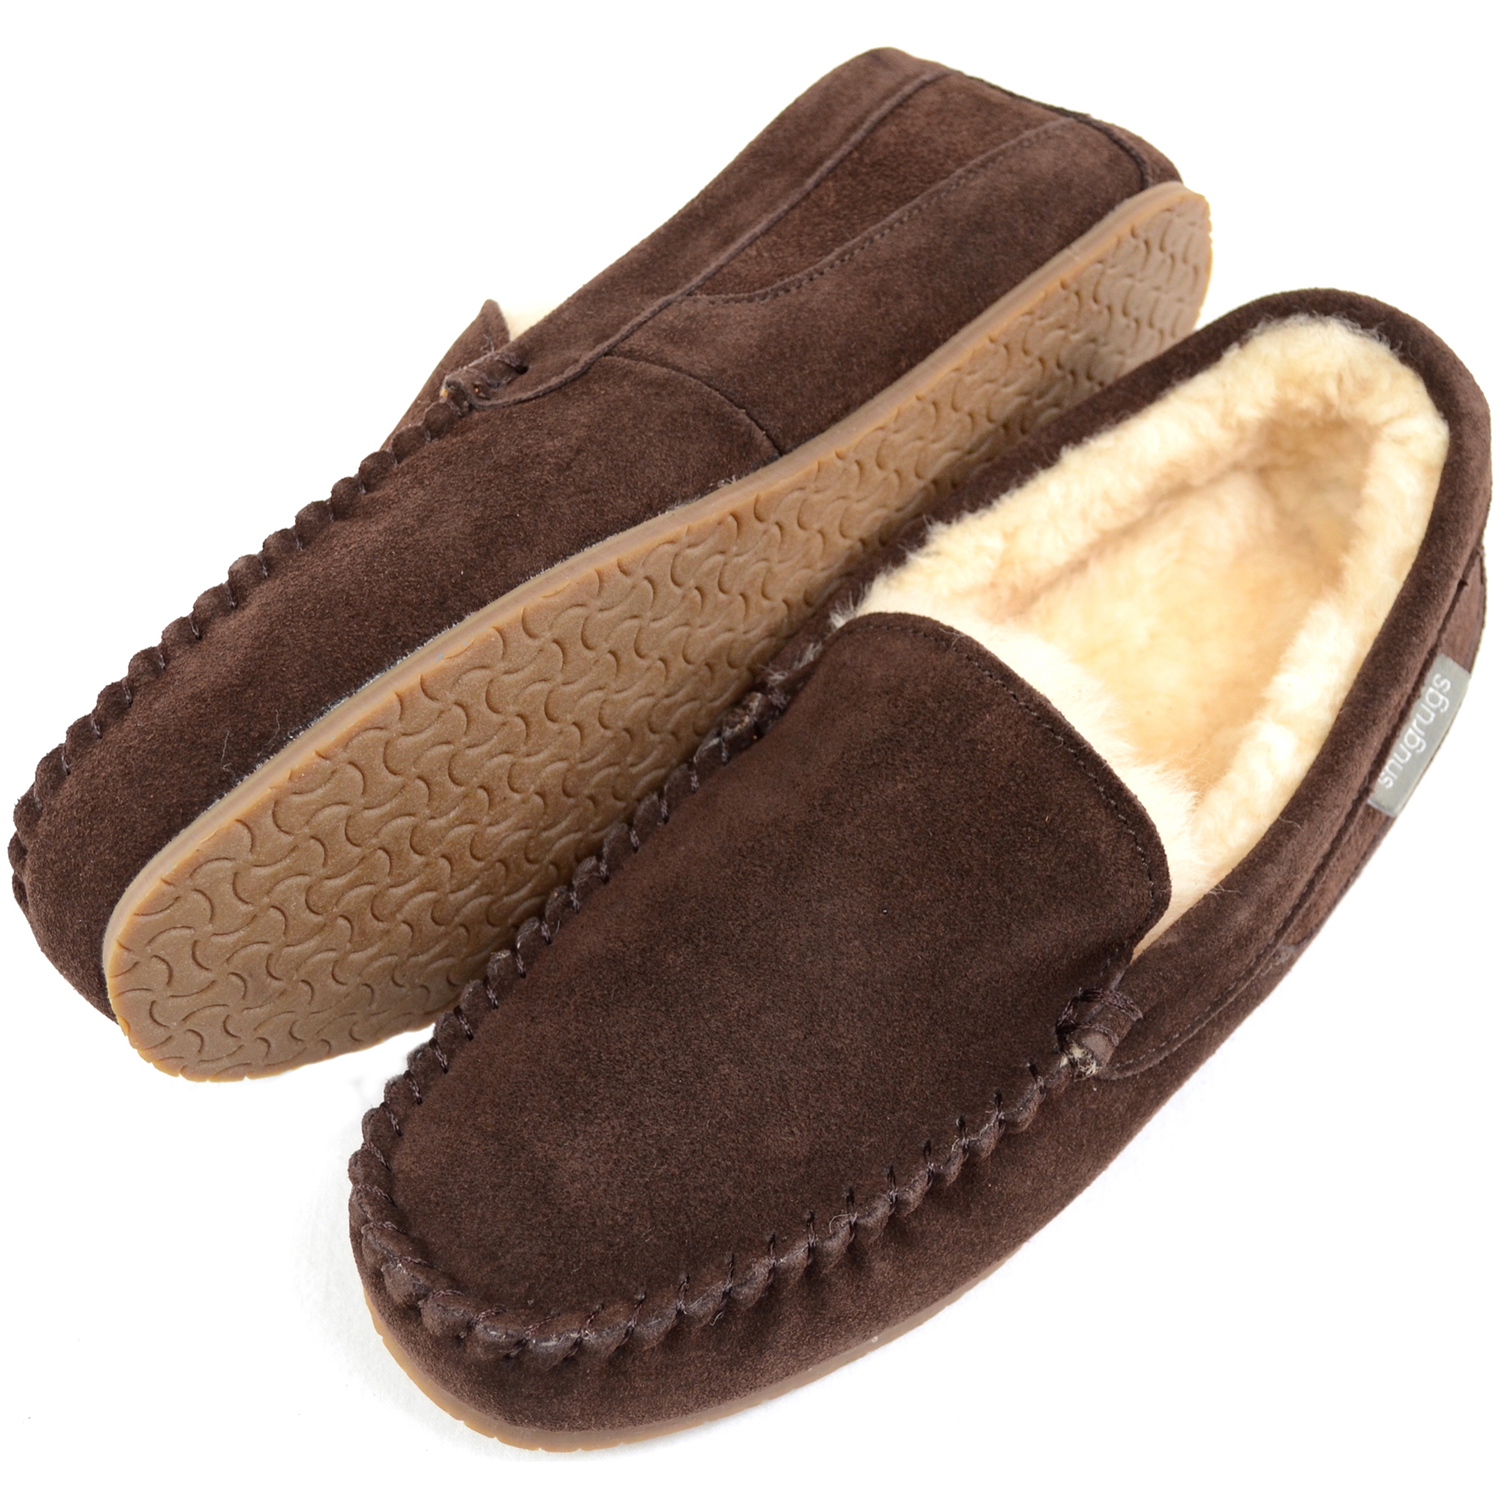 3ceaca54800 Men's Suede Loafer Slipper - Sheepskin lining - Samuel